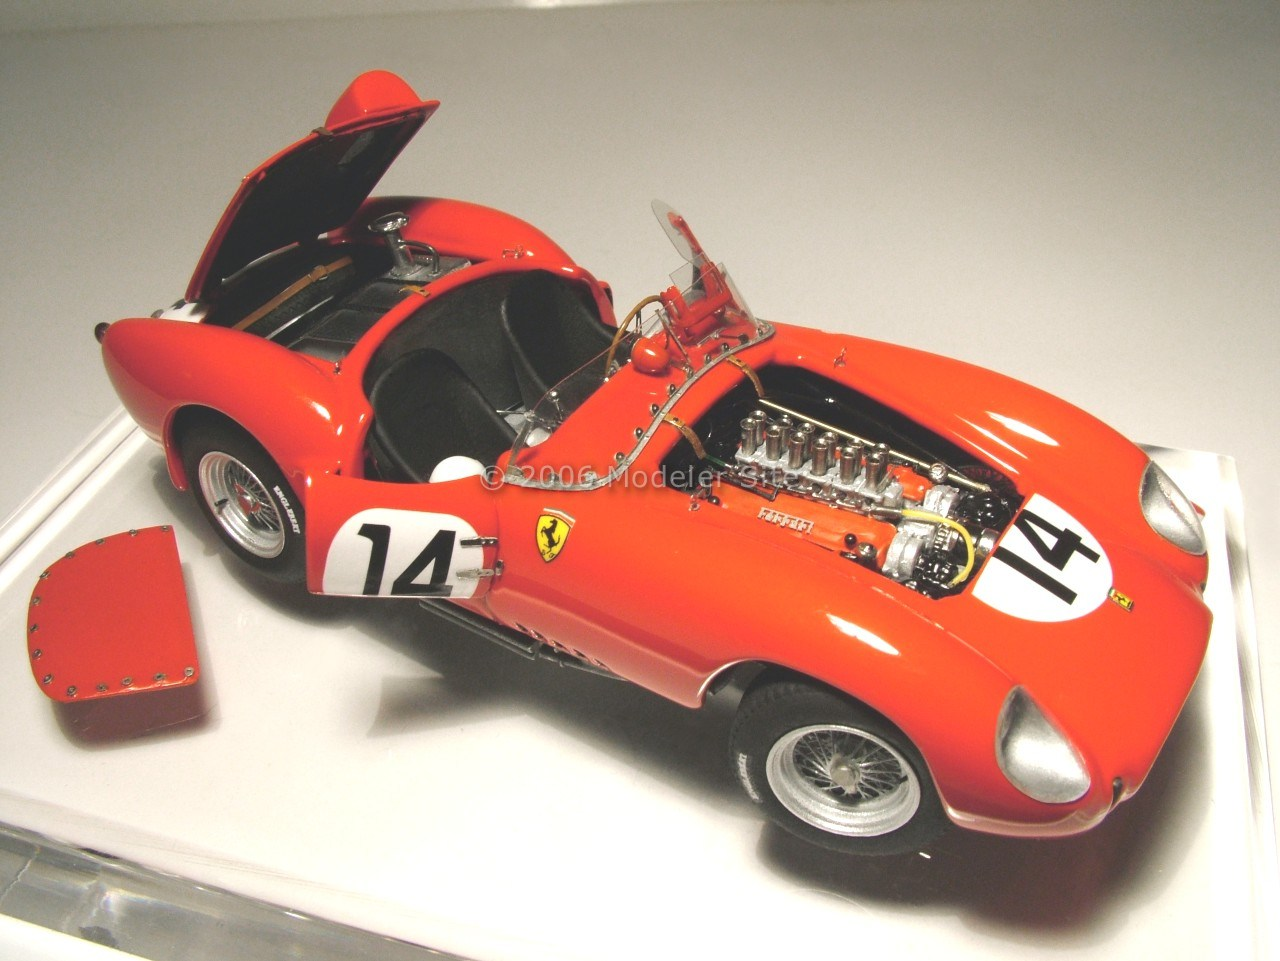 building the ferrari 250 tr 1958 from feeling43 1 43 scale 1 43 scale cars modeler site. Black Bedroom Furniture Sets. Home Design Ideas